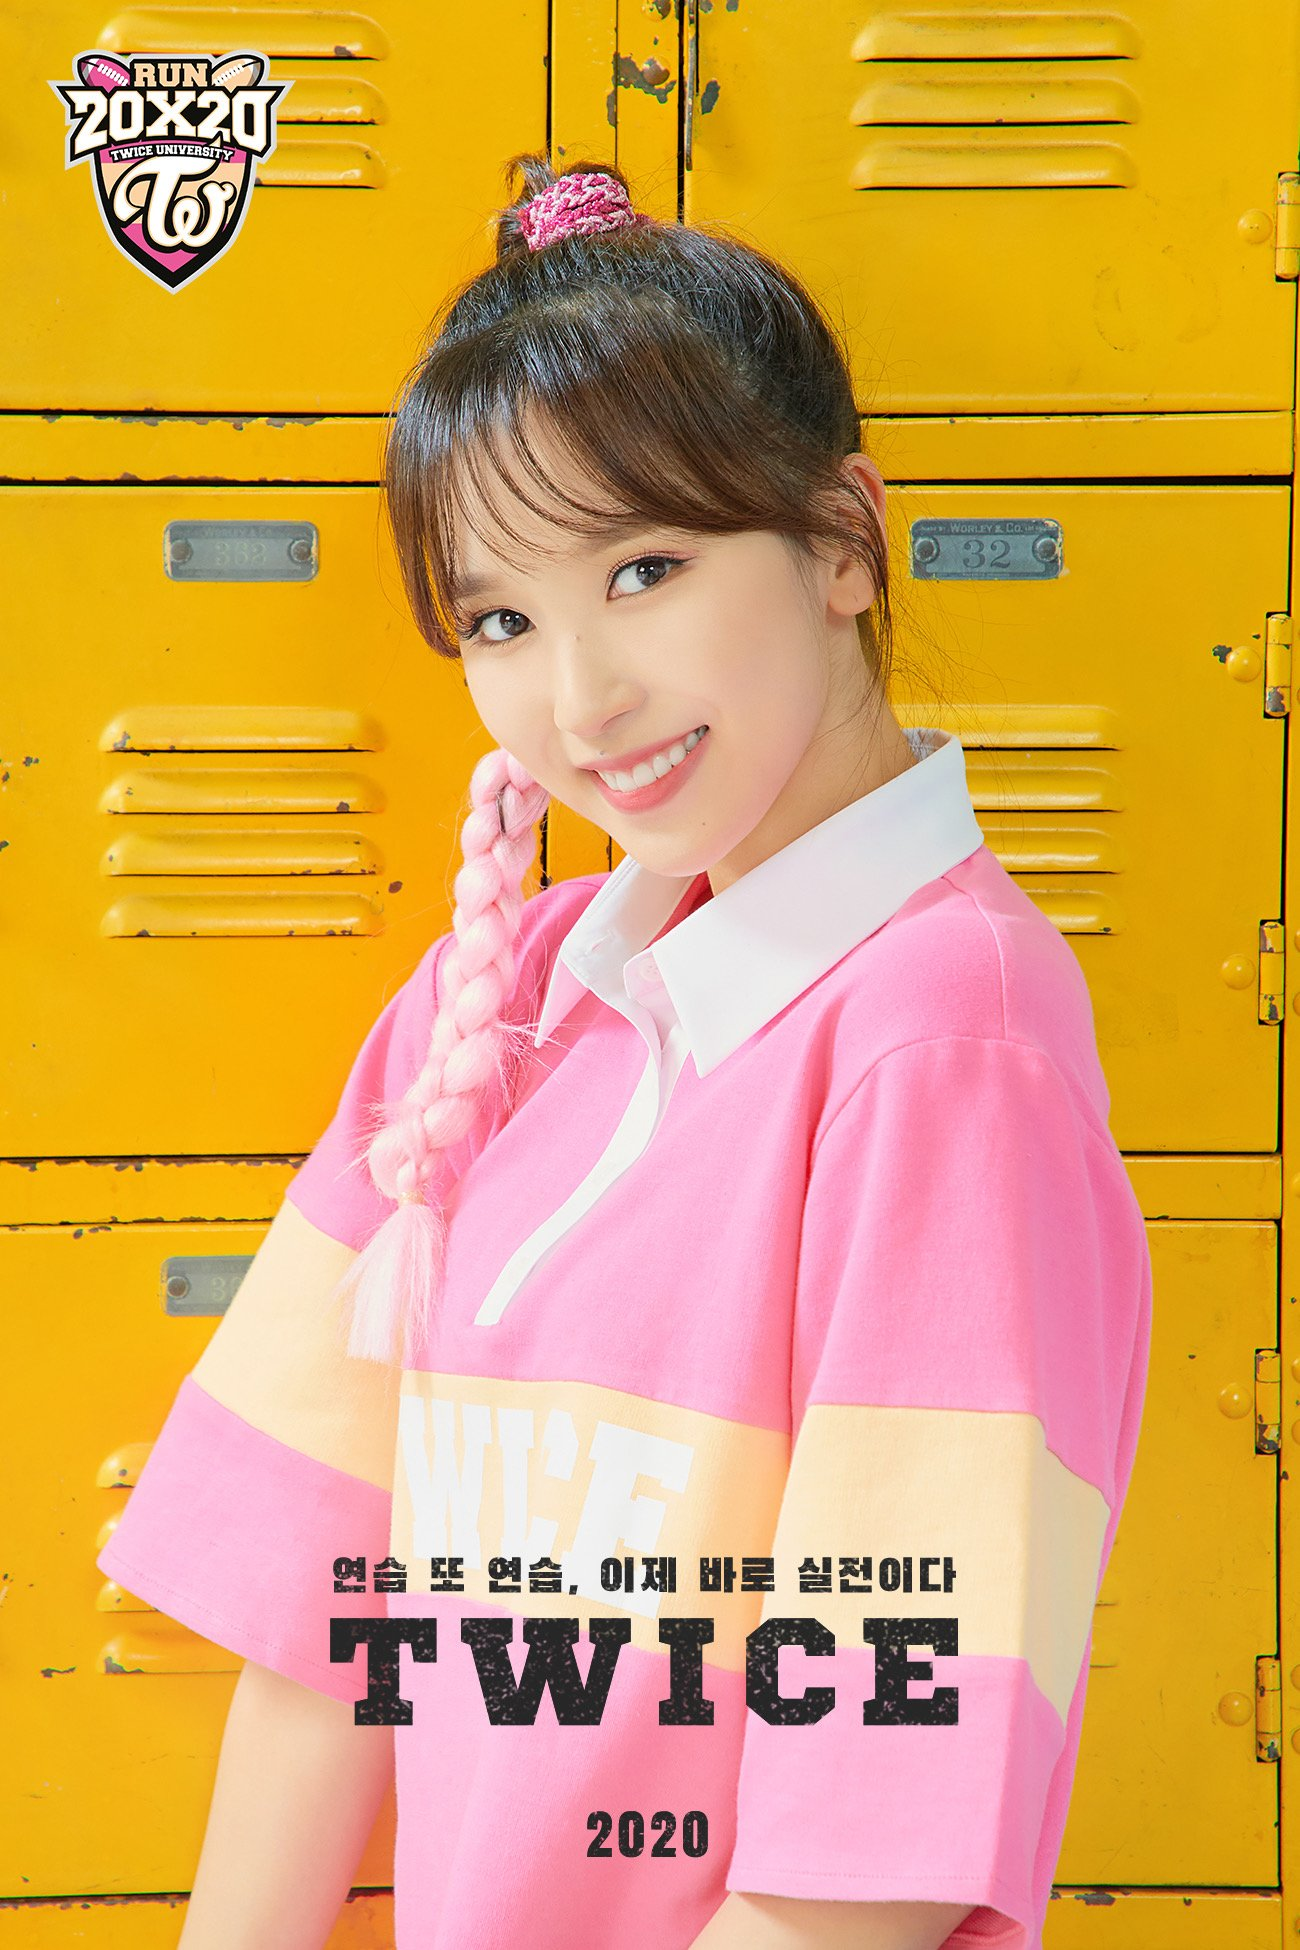 TWICE Season's Greetings 2020 Twice University Rugby Team Mina